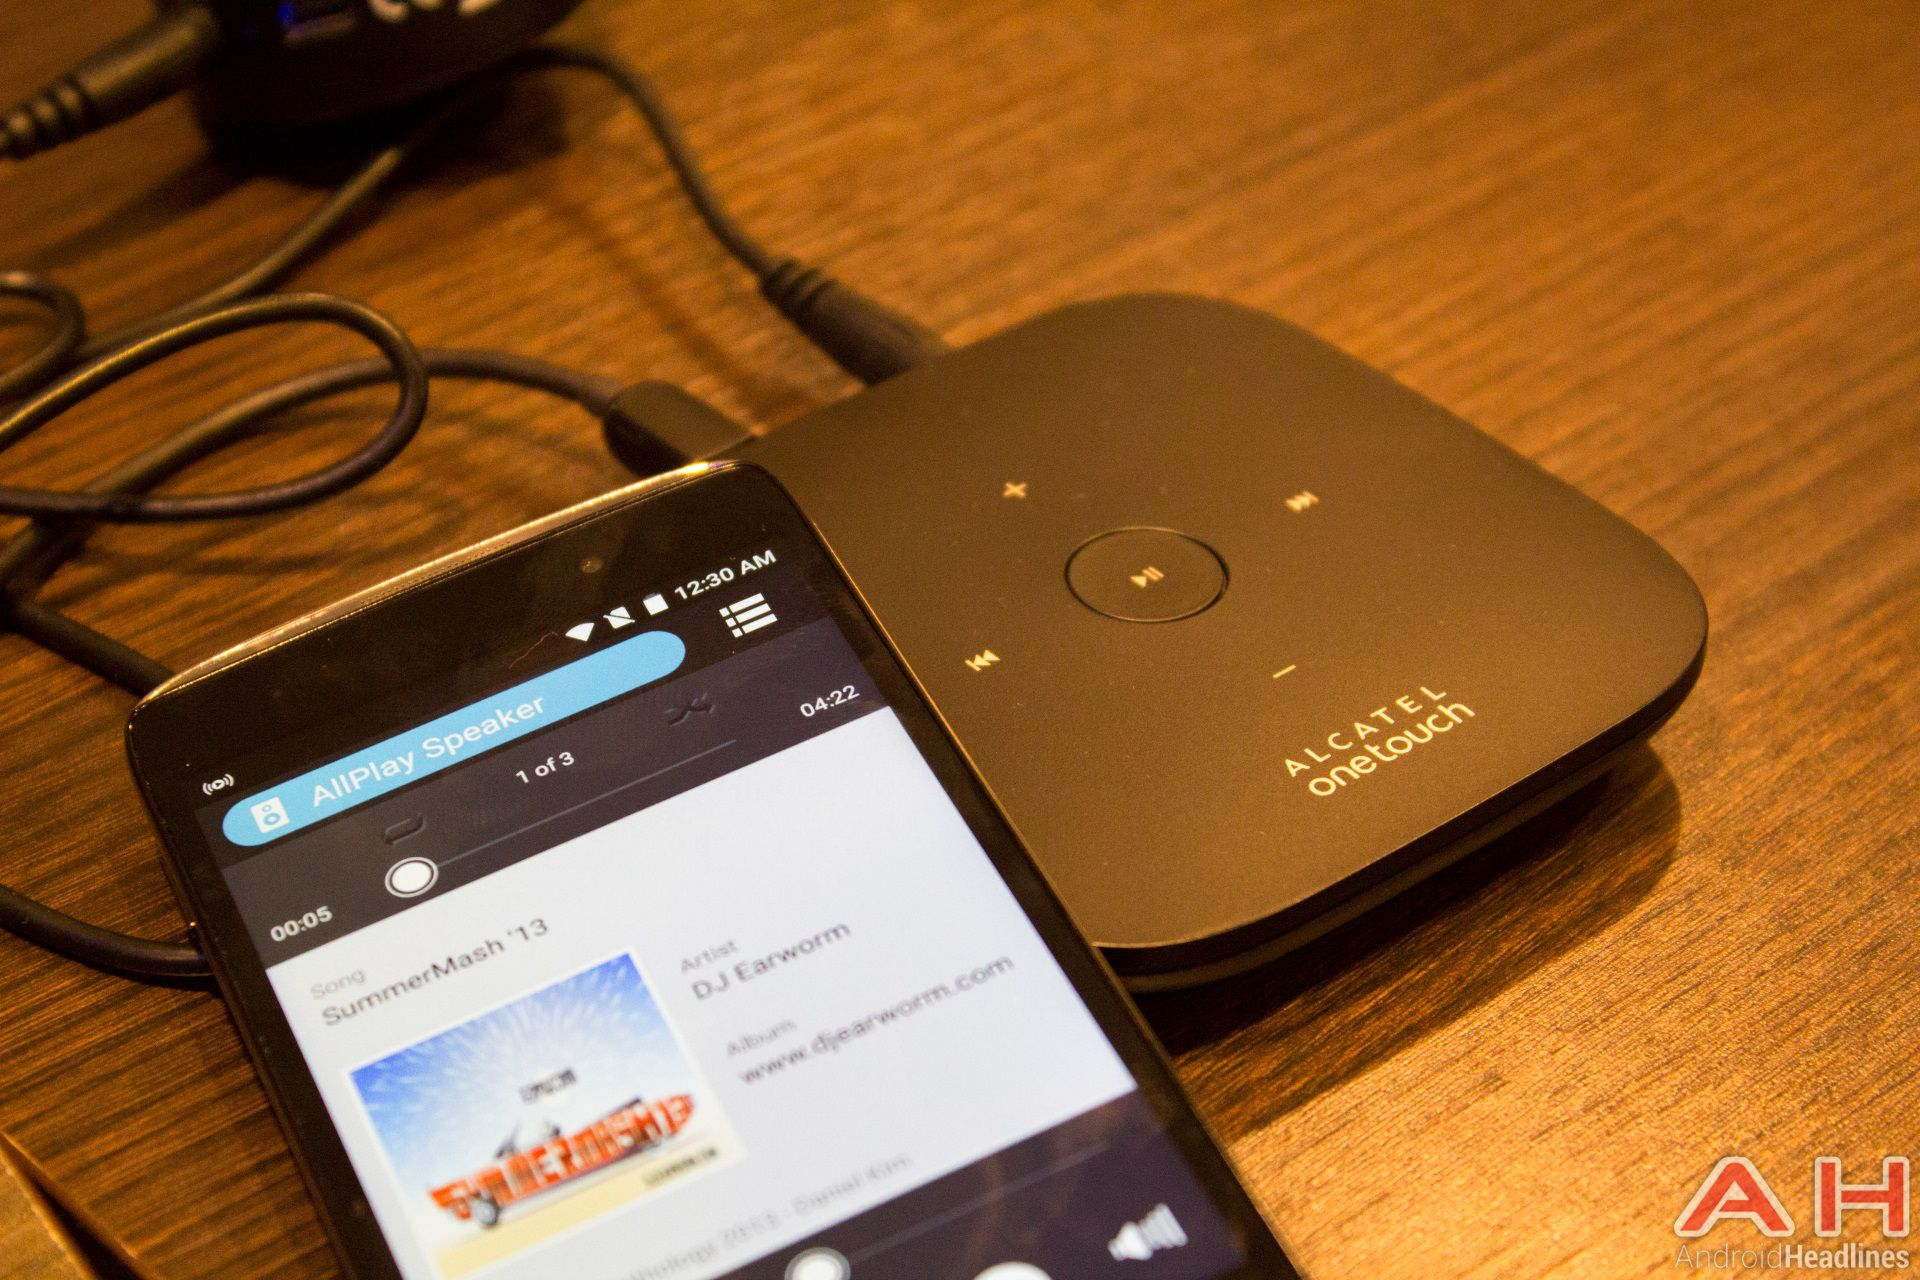 Alcatel OneTouch Reveal 4G Car WiFi and WiFi Music Box